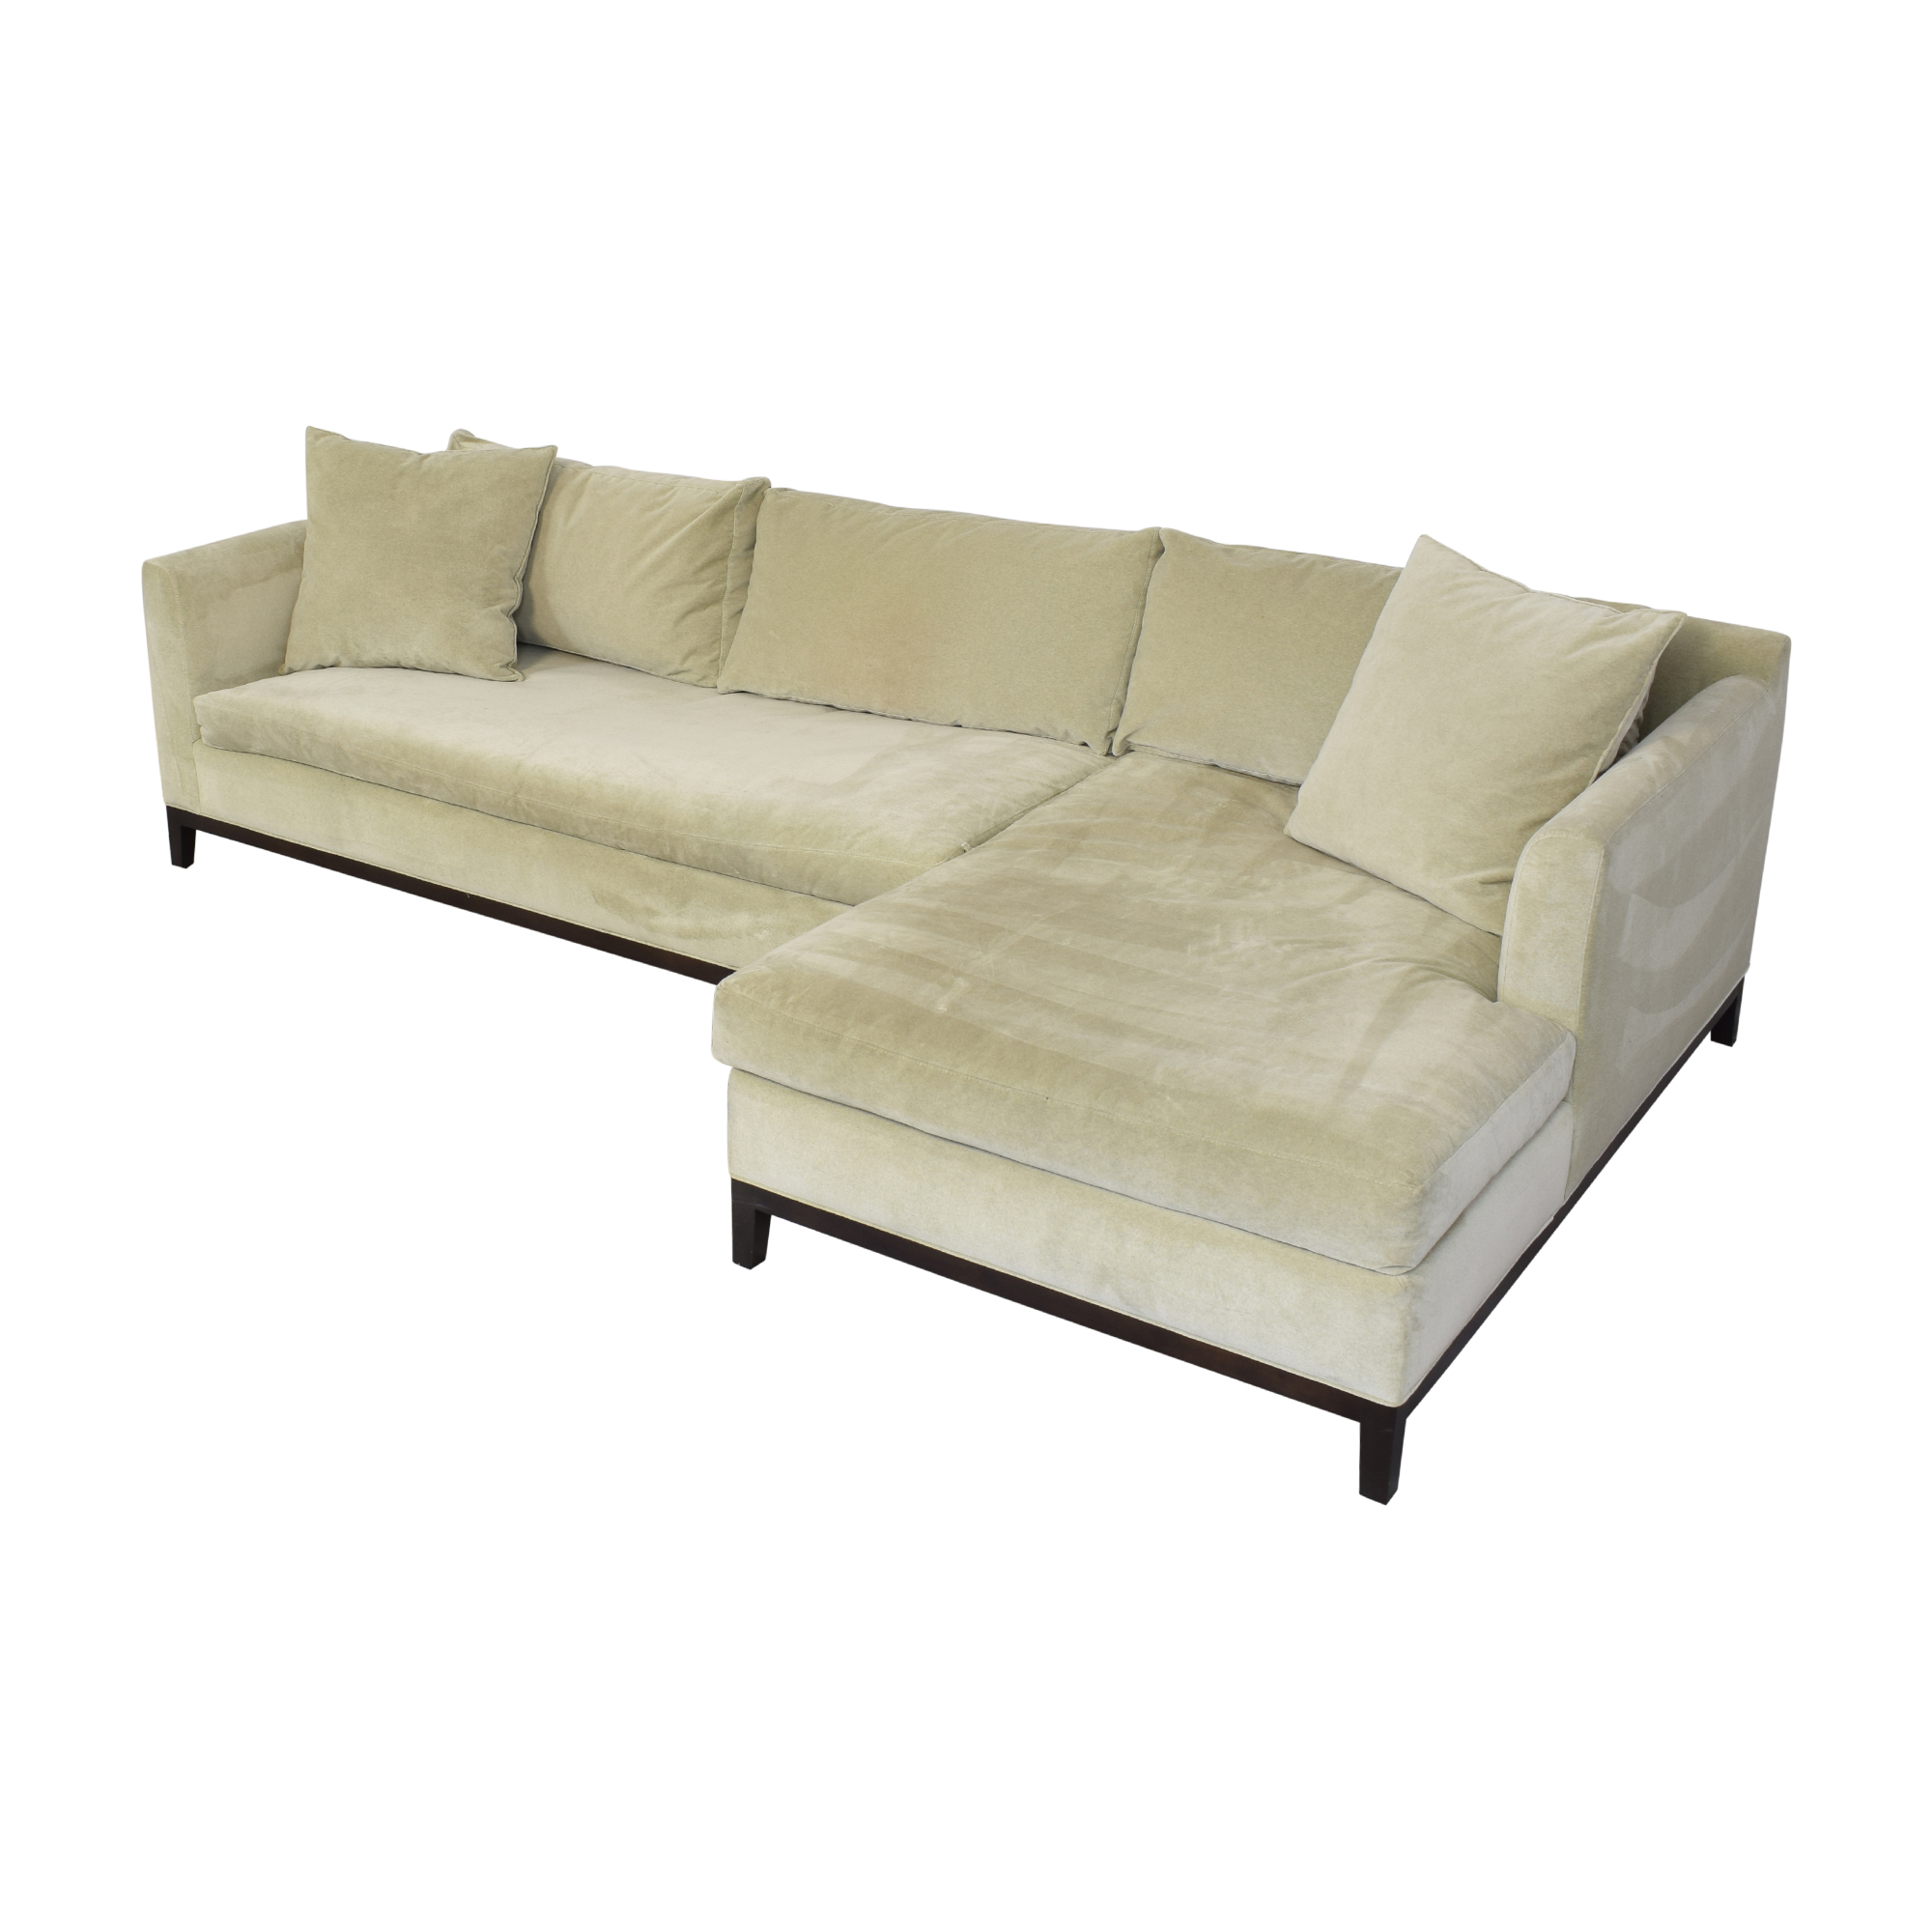 shop Cisco Brothers Cisco Brothers Tristan Sectional Sofa online